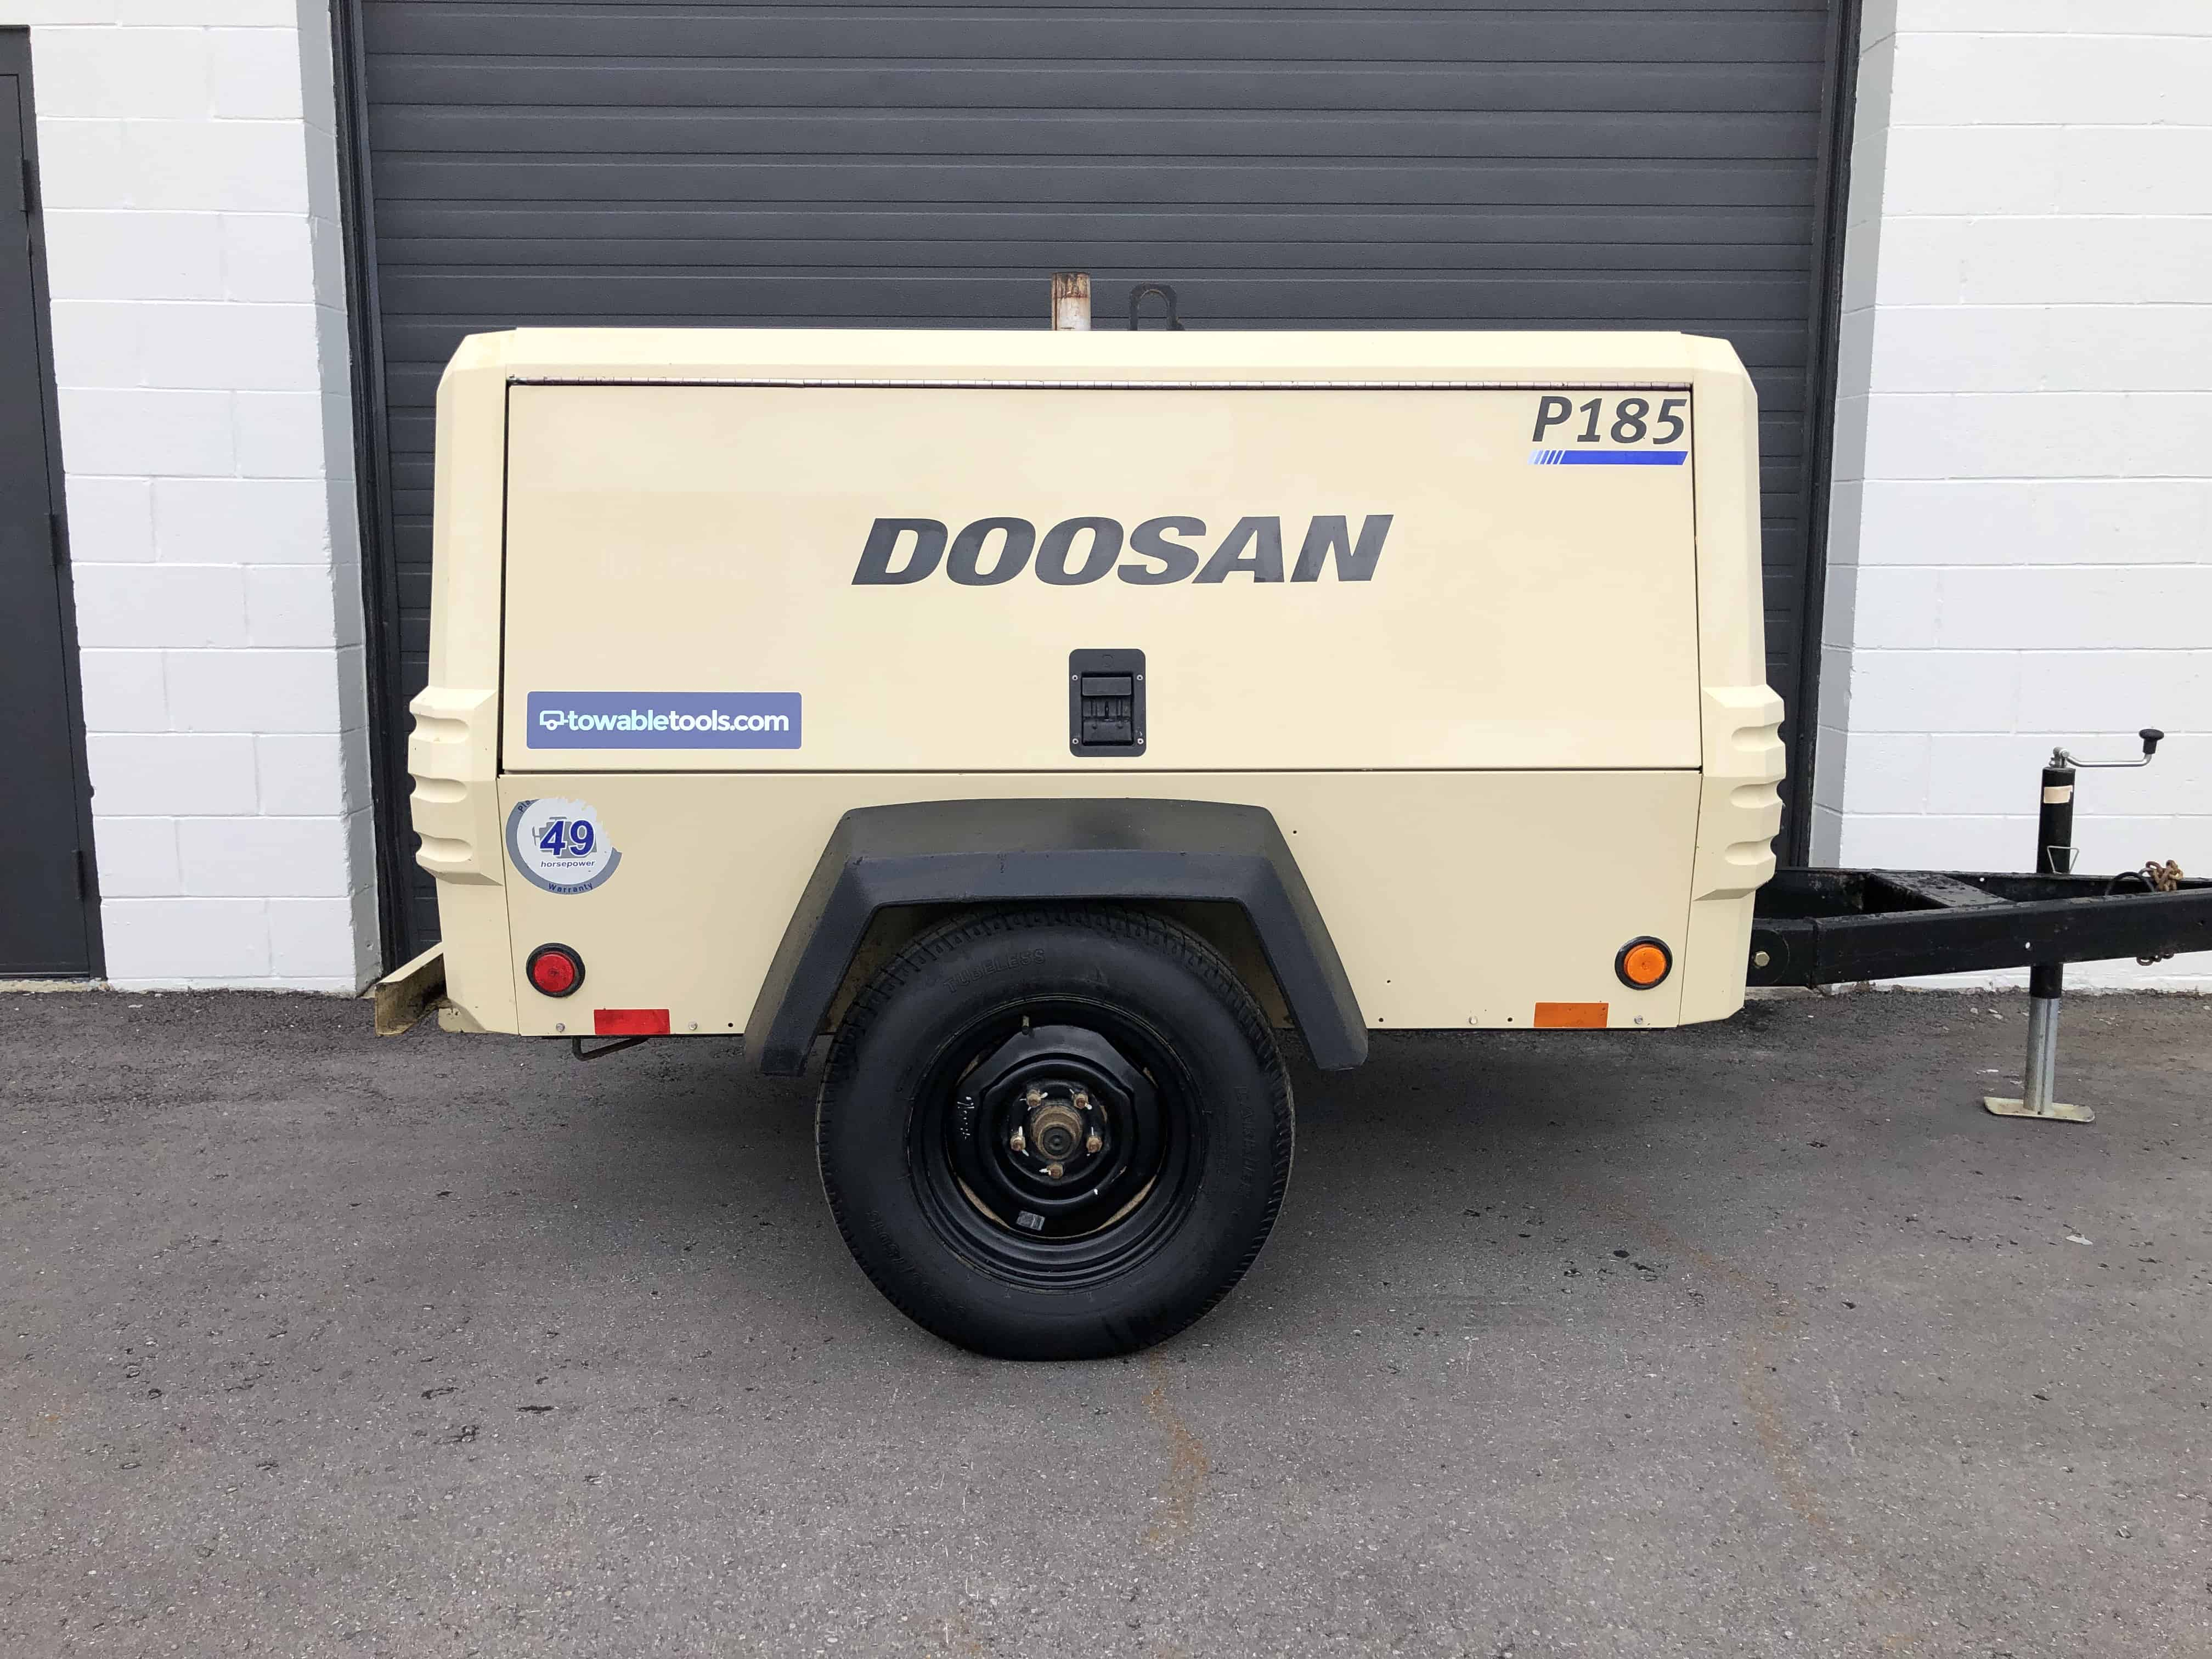 Used 185 CFM Diesel Doosan Compressor for sale - Towable Tools Calgary, Canada